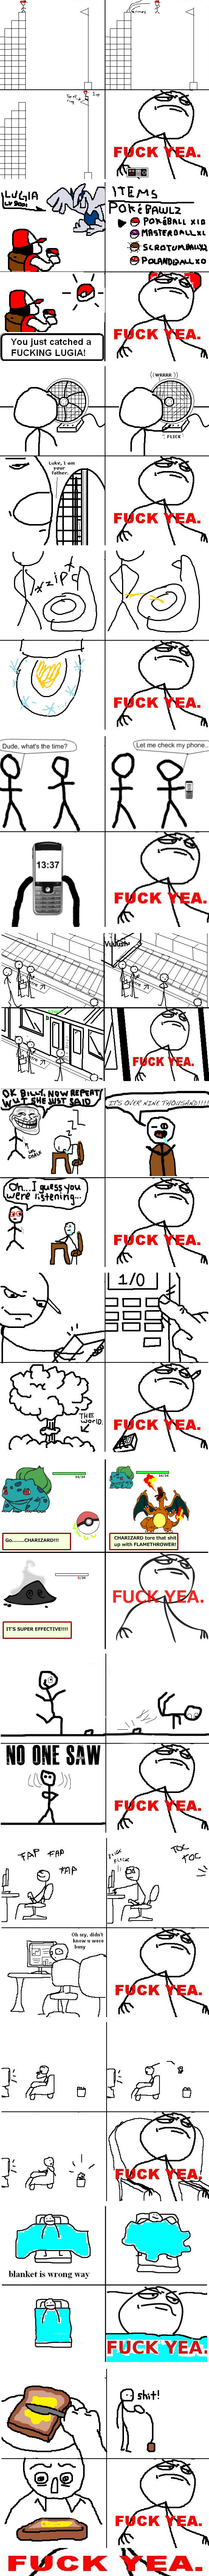 "Yea Collection. A collection of yea comics. Most of them can be found here: <a href=""http://knowyourmeme.com/memes/f-ck-yea"" target=_blank>knowy"